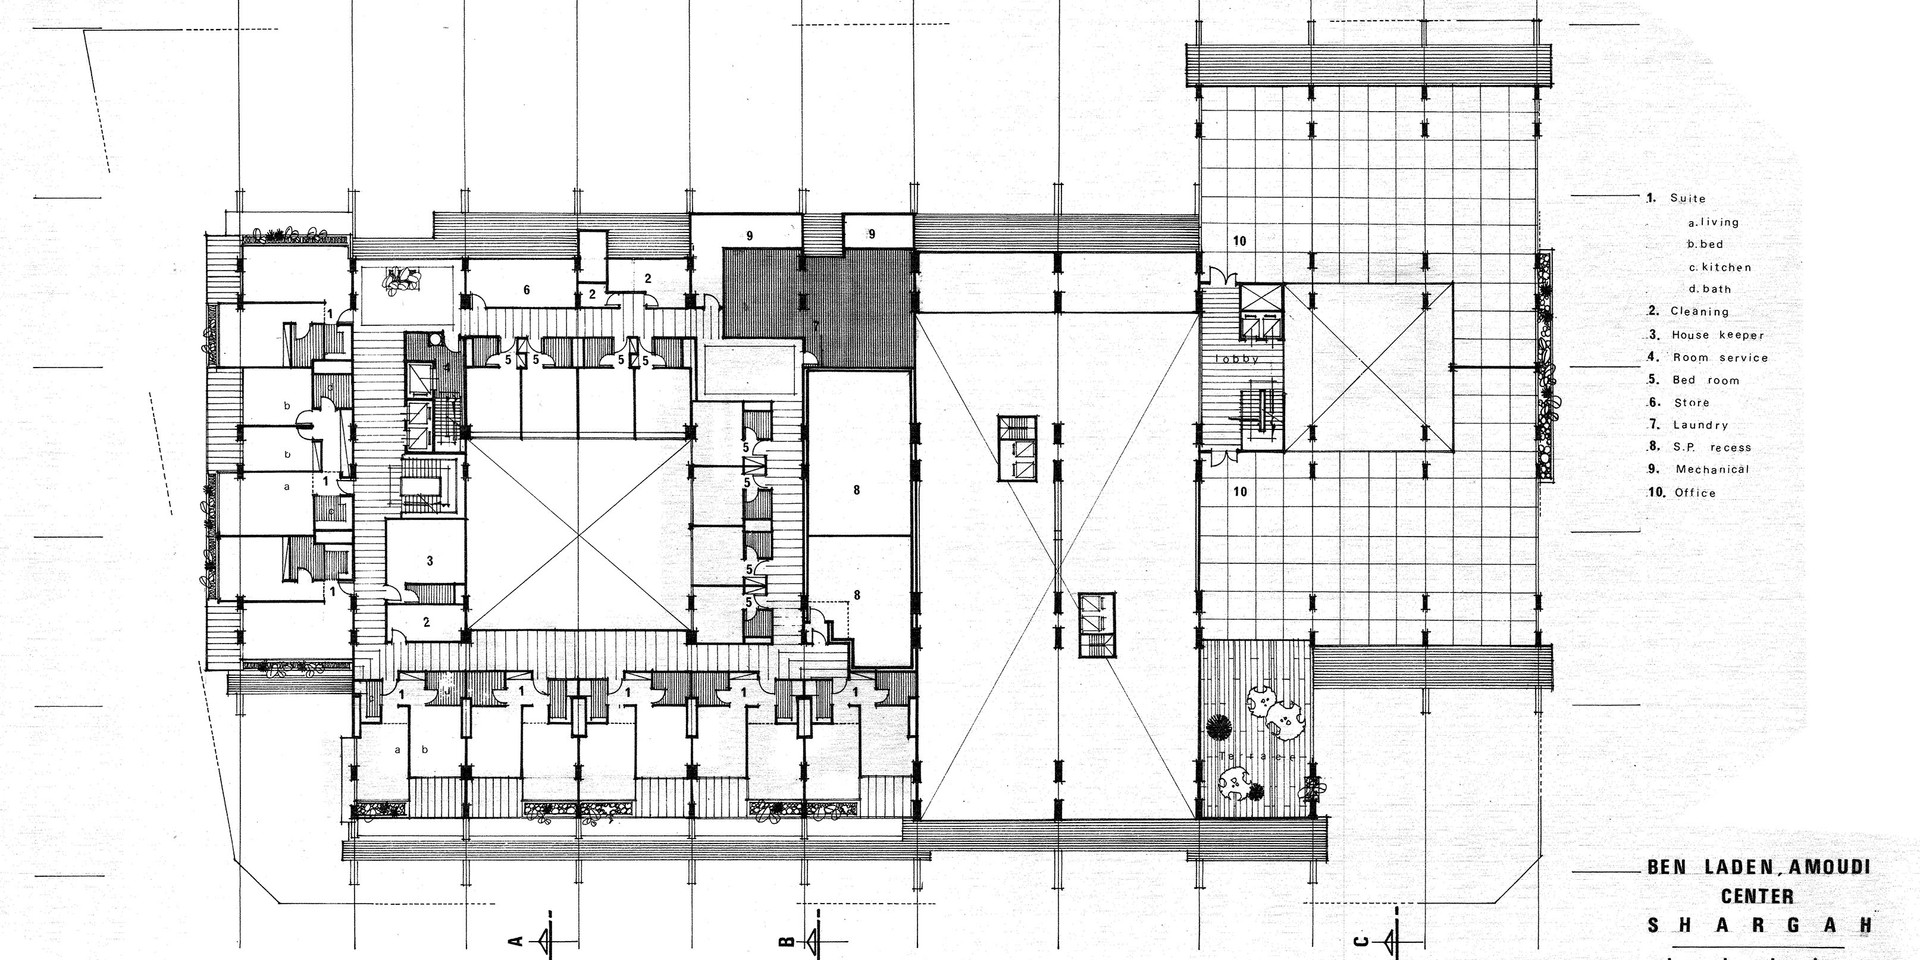 Amoudi Center Second Floor Plan